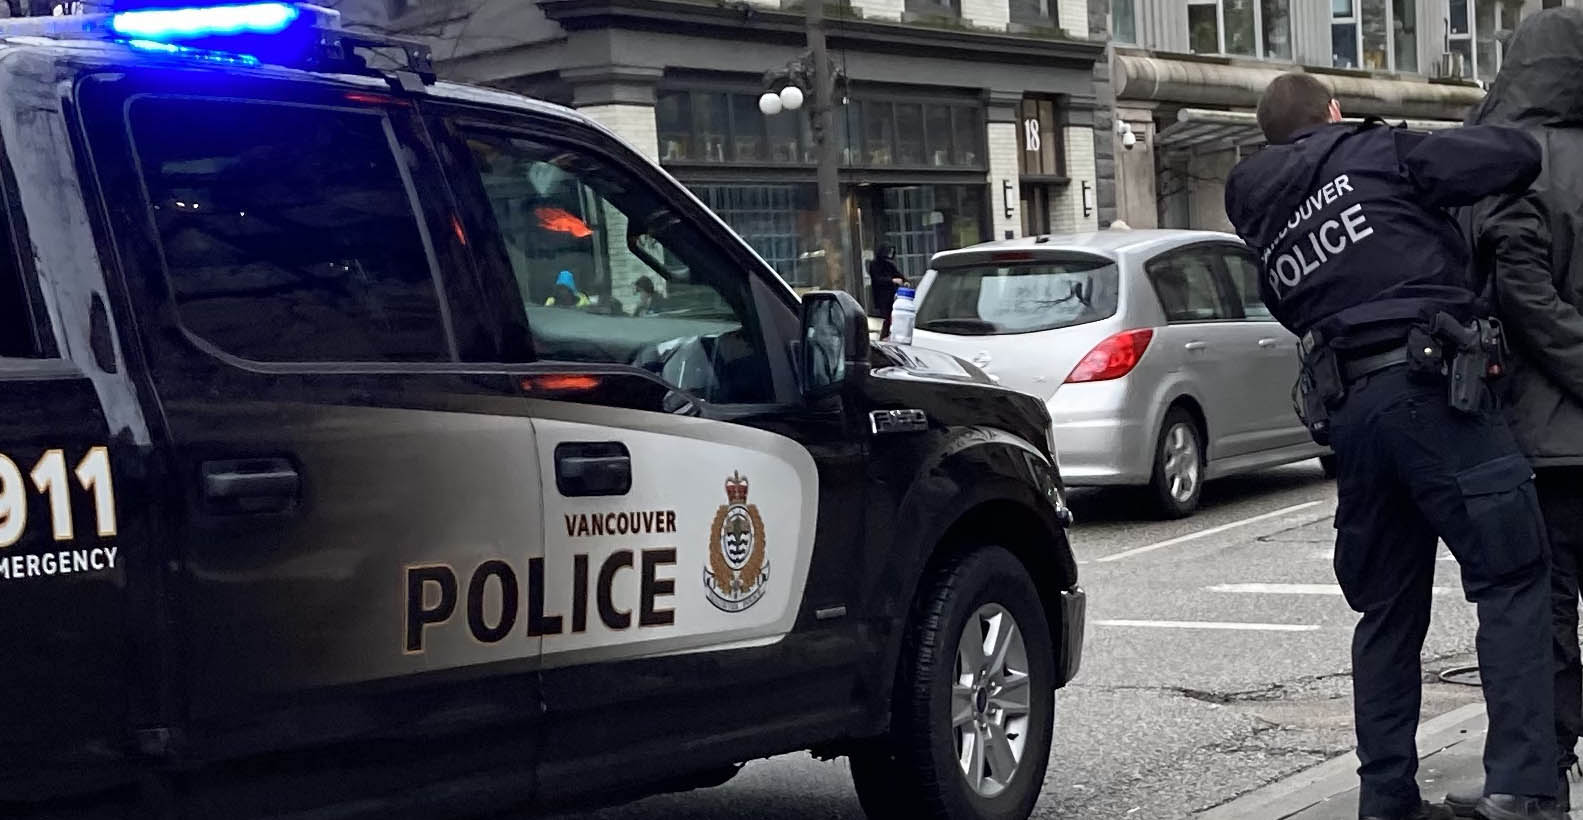 Two police officers arresting someone on the sidewalk in Vancouver